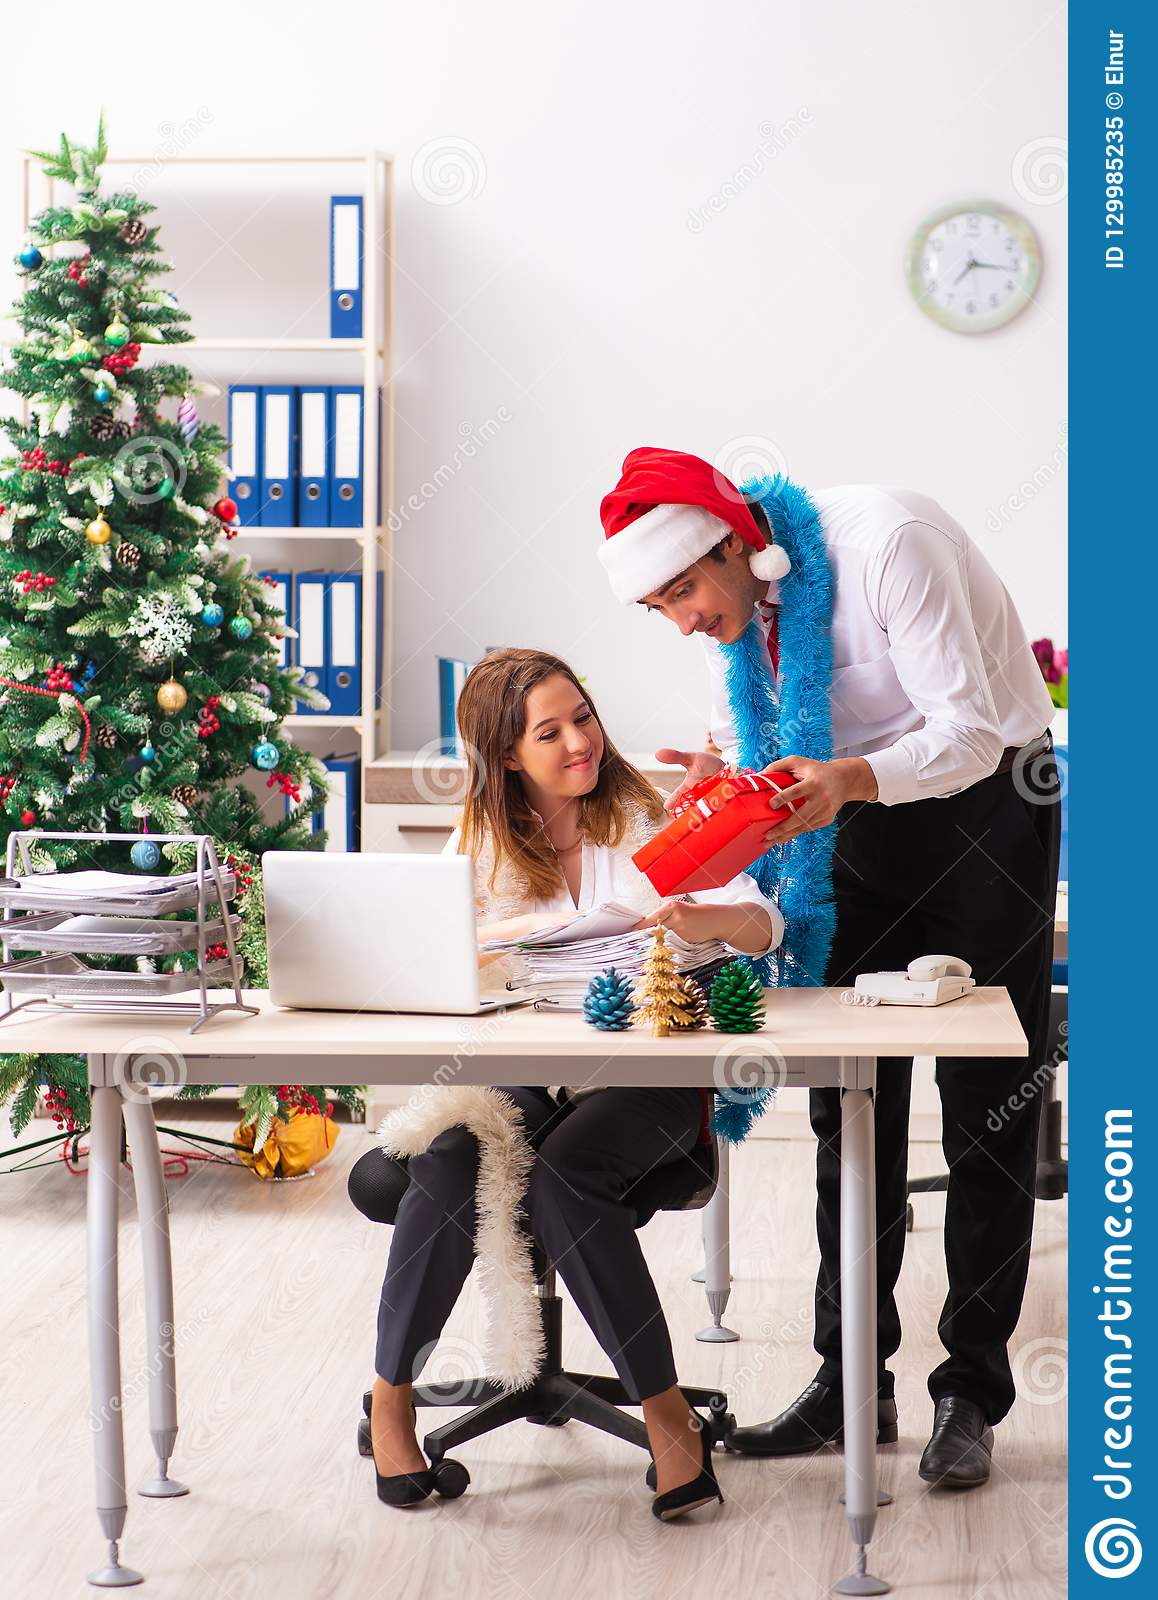 The Colleagues Exchaing Christmas Presents In Office Stock Image ...